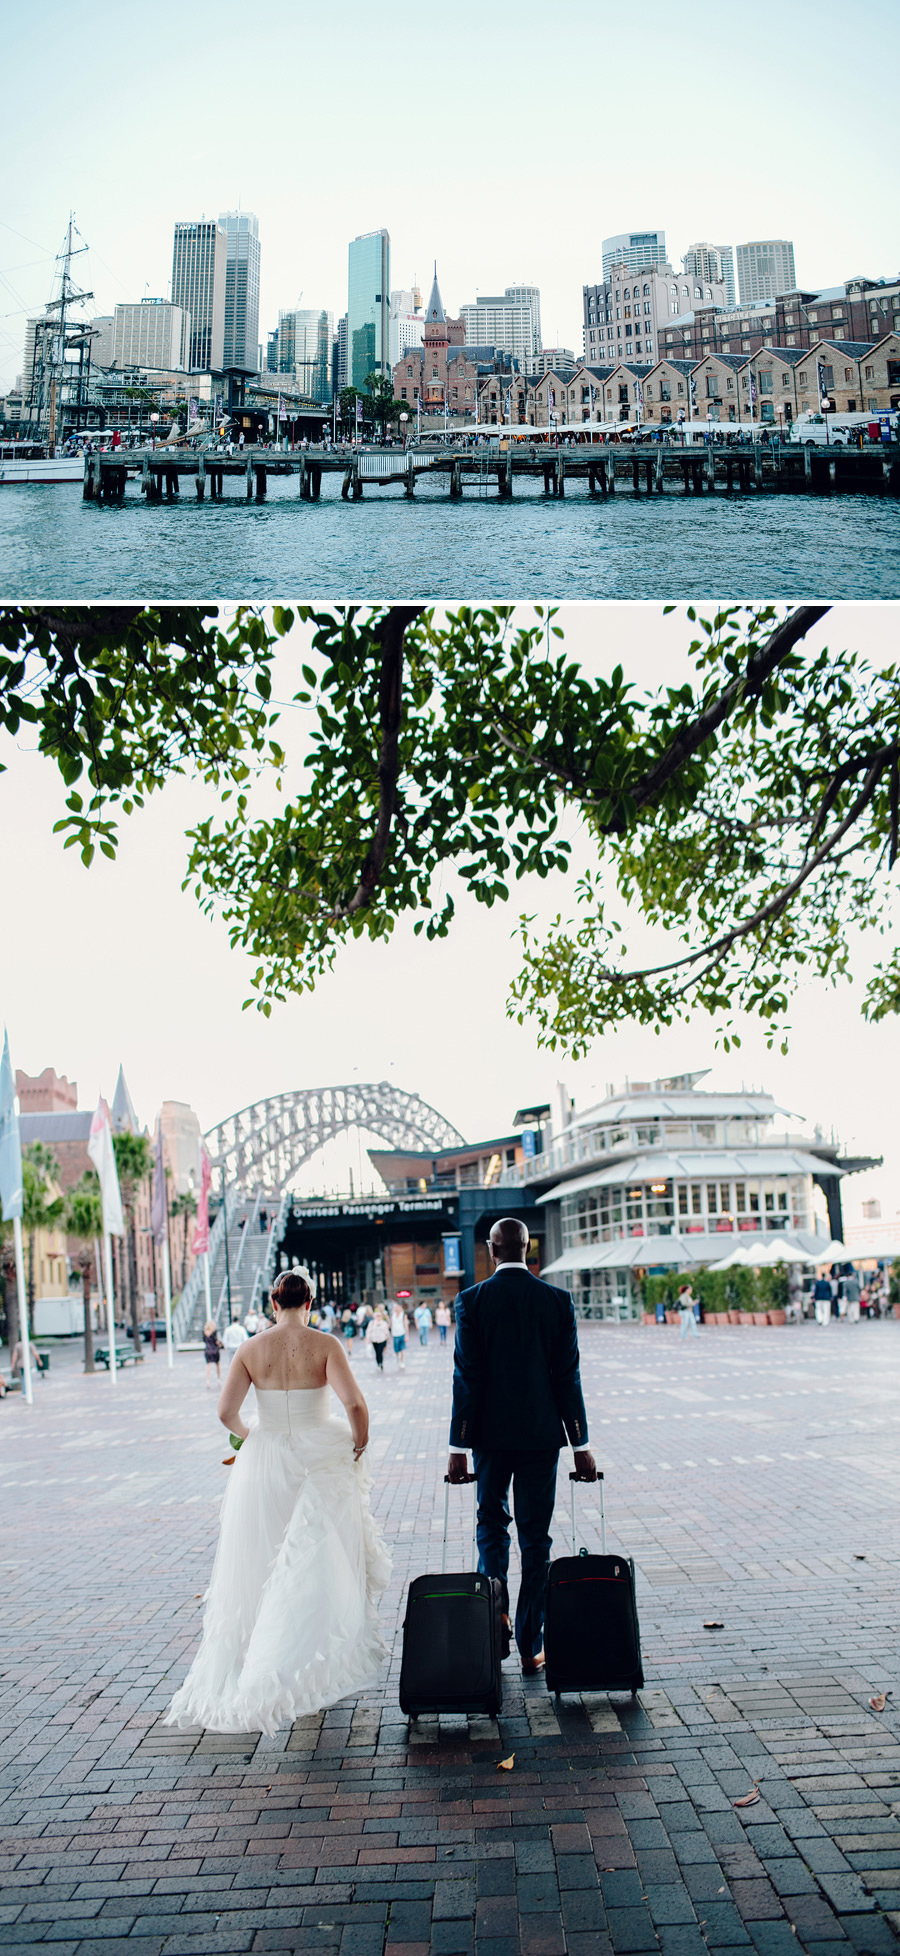 The Rocks Wedding Photographers: Circular quay portraits